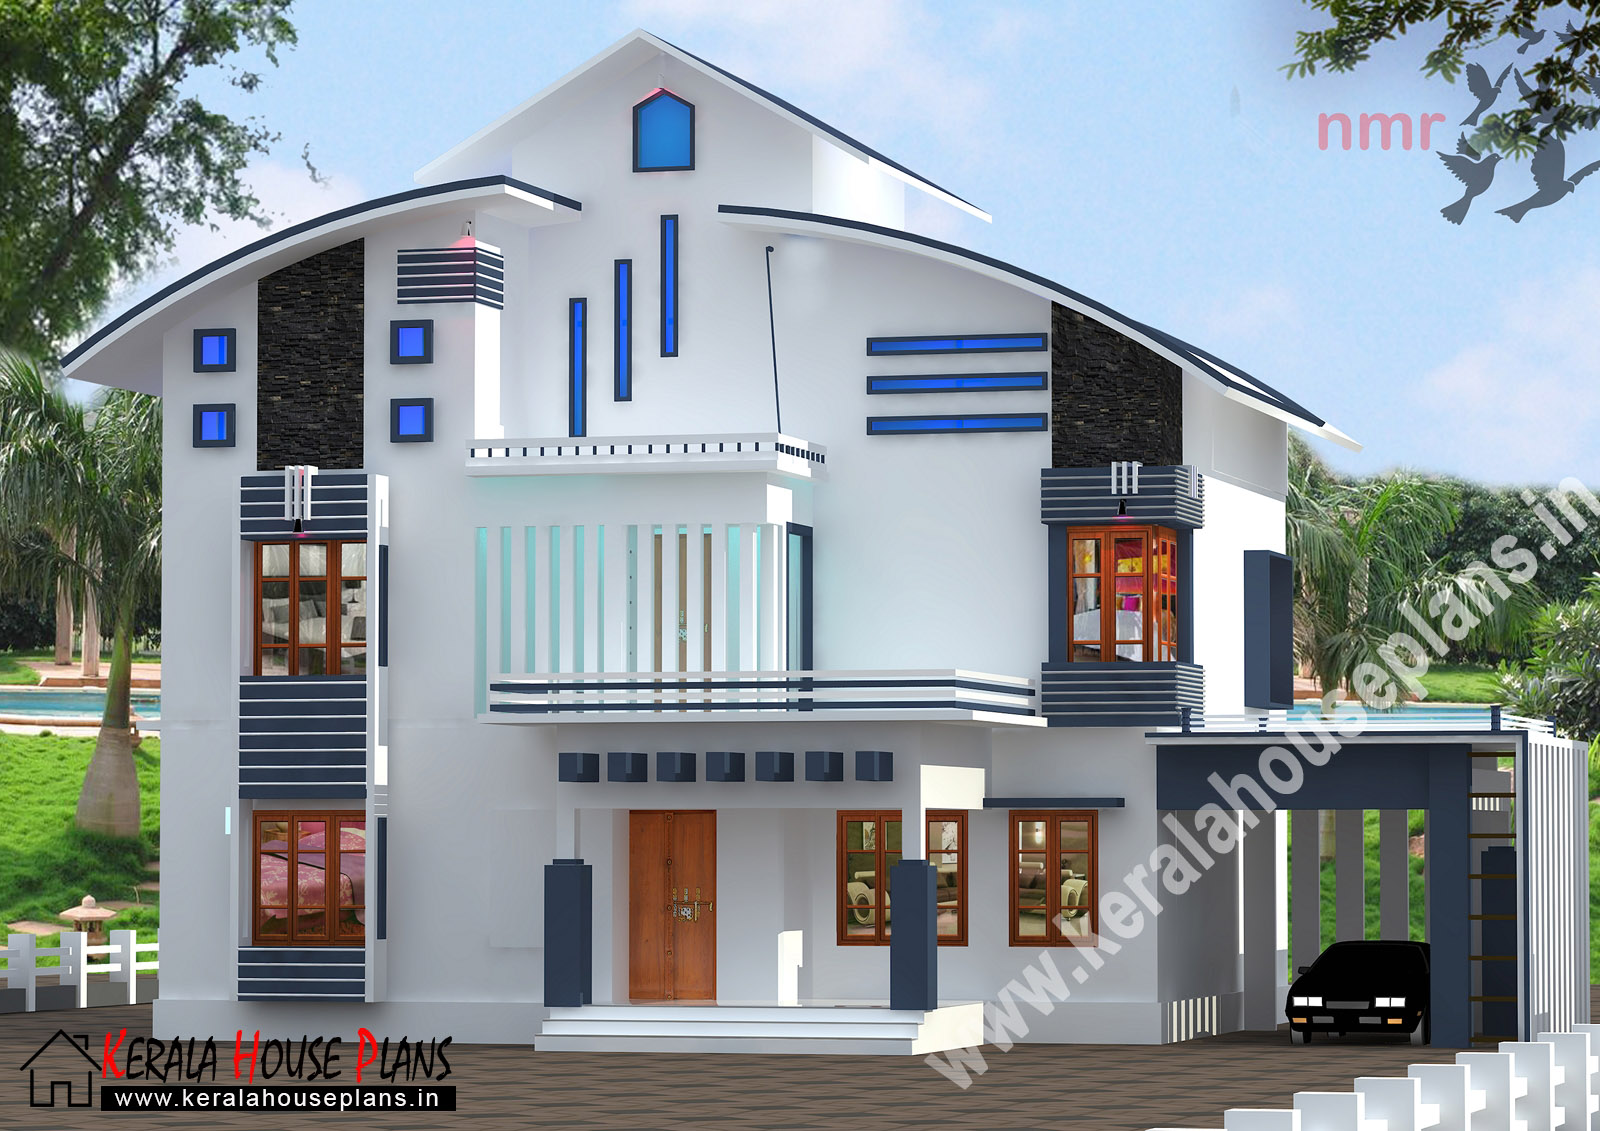 New kerala house plans for Kerala new house plans